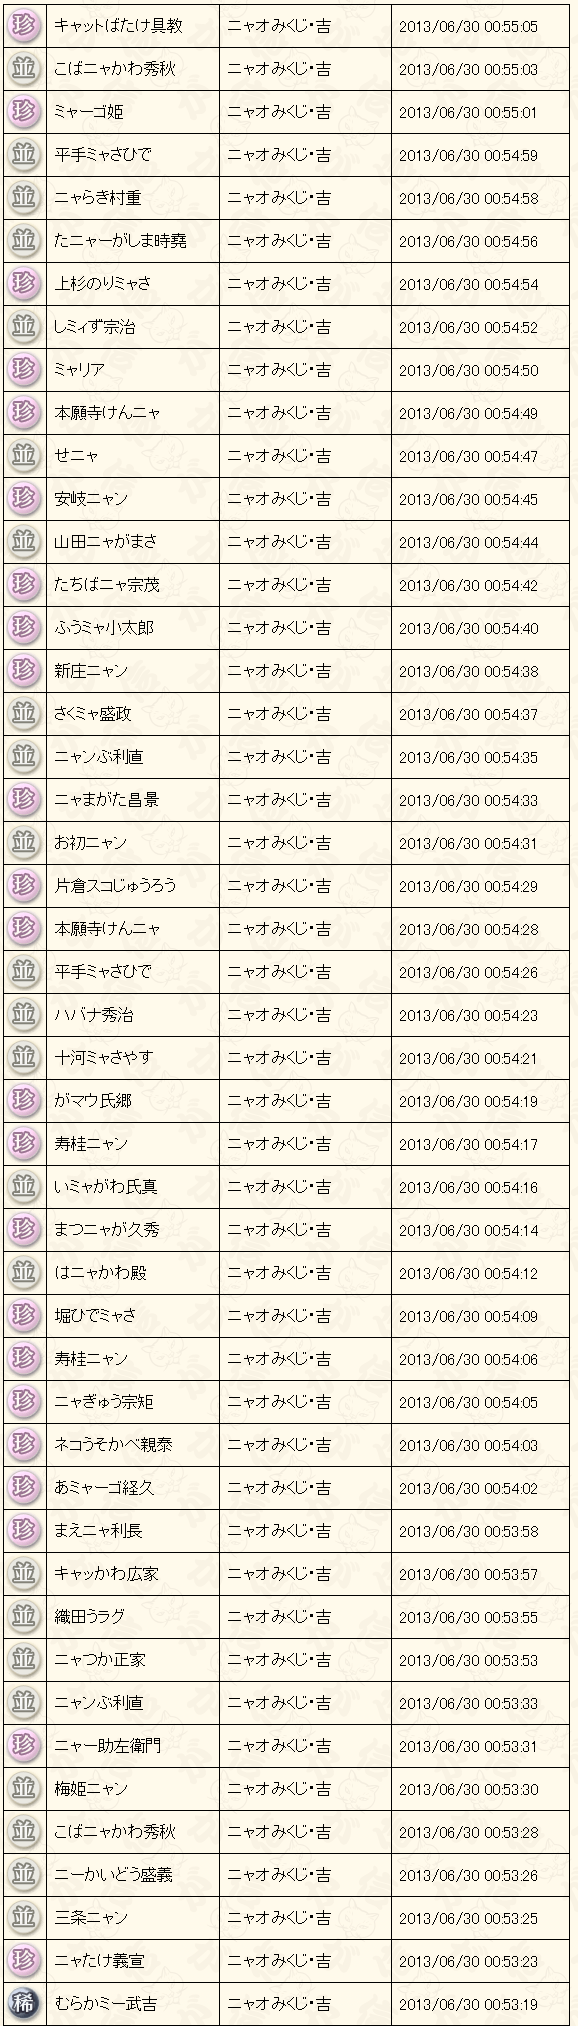 20130630005633982.png